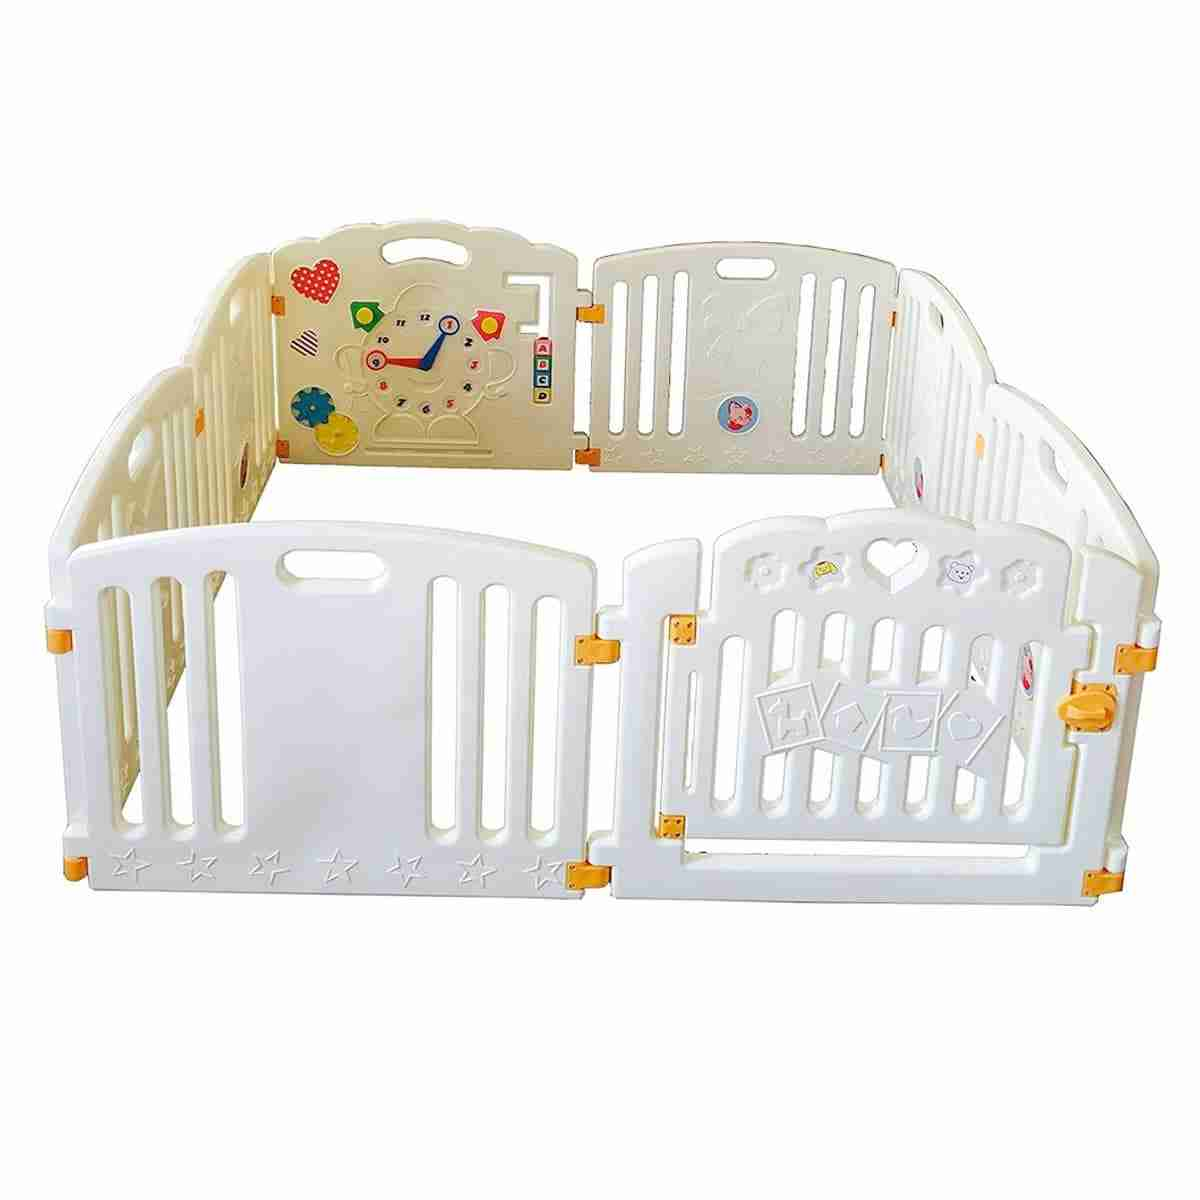 play Mats Included Birthday Gift Playpen Nursery Playpen Children Play Pen